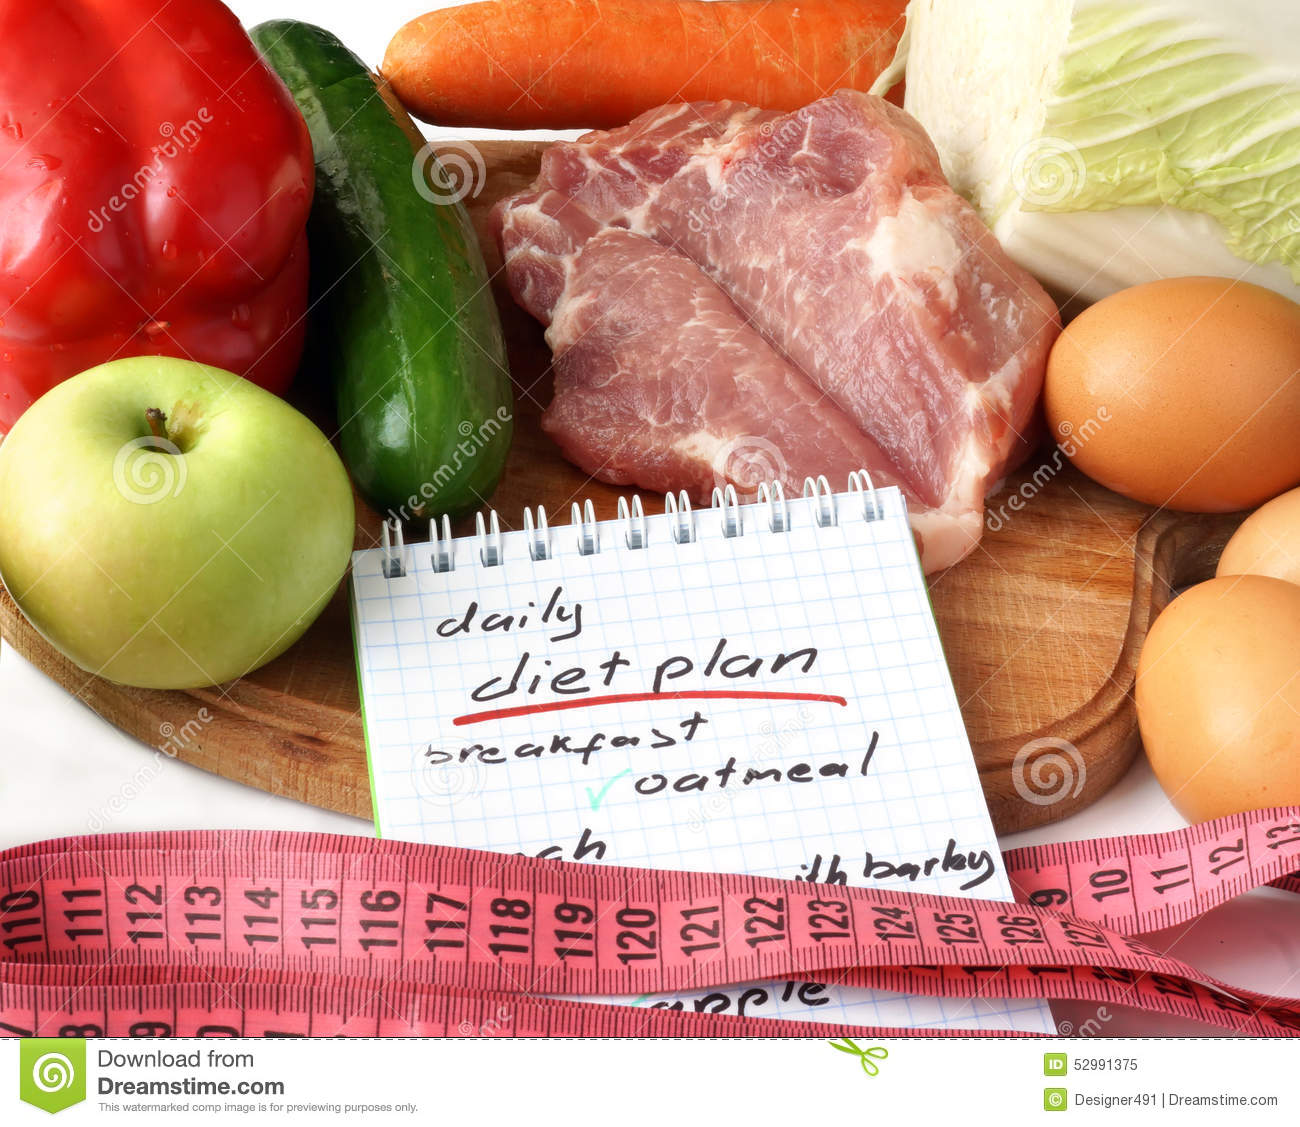 Notepad With Daily Diet Plan Stock Image Image Of Weight Lifestyle 52991375